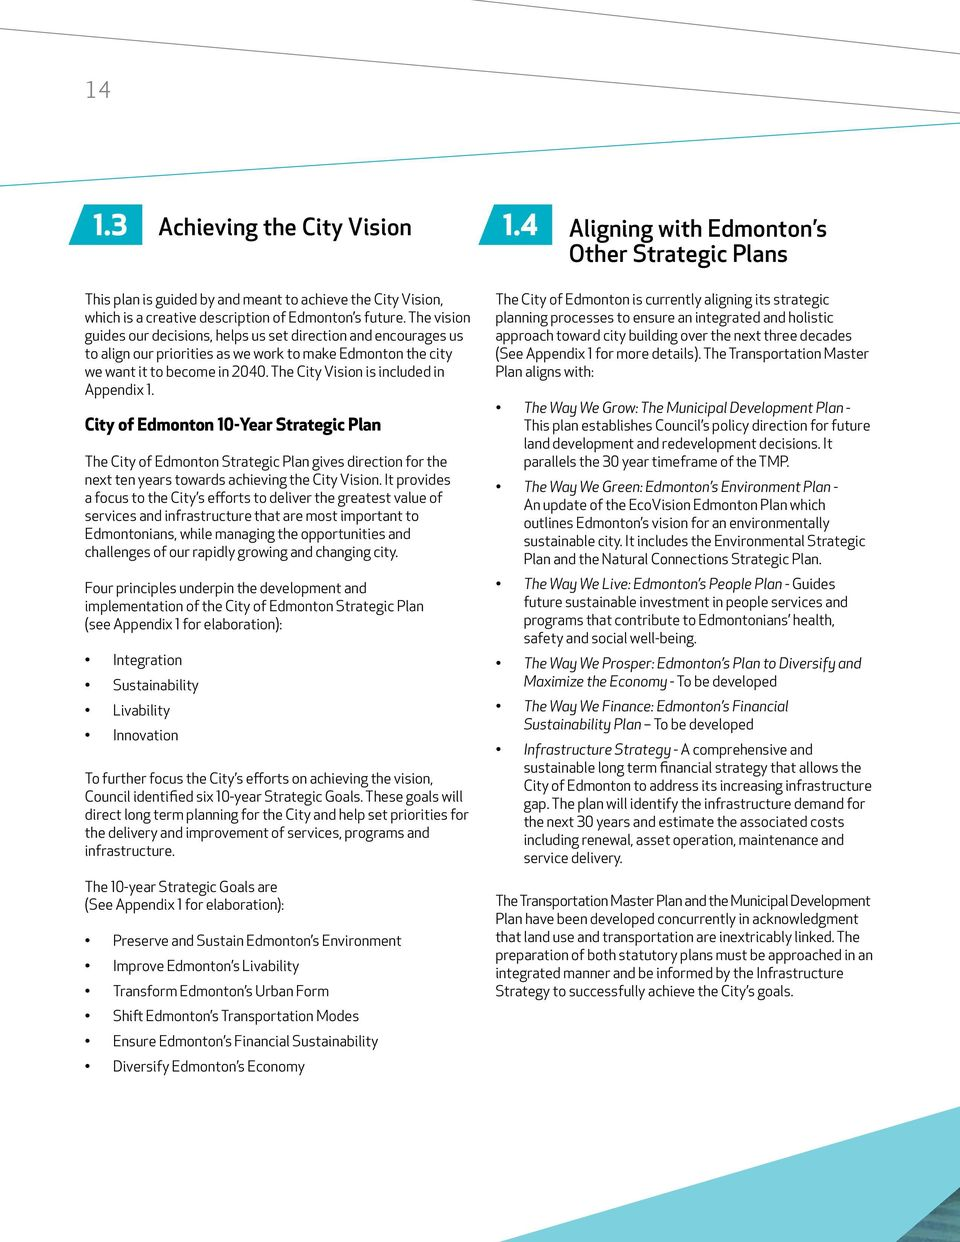 The City Vision is included in Appendix 1. City of Edmonton 10-Year Strategic Plan The City of Edmonton Strategic Plan gives direction for the next ten years towards achieving the City Vision.